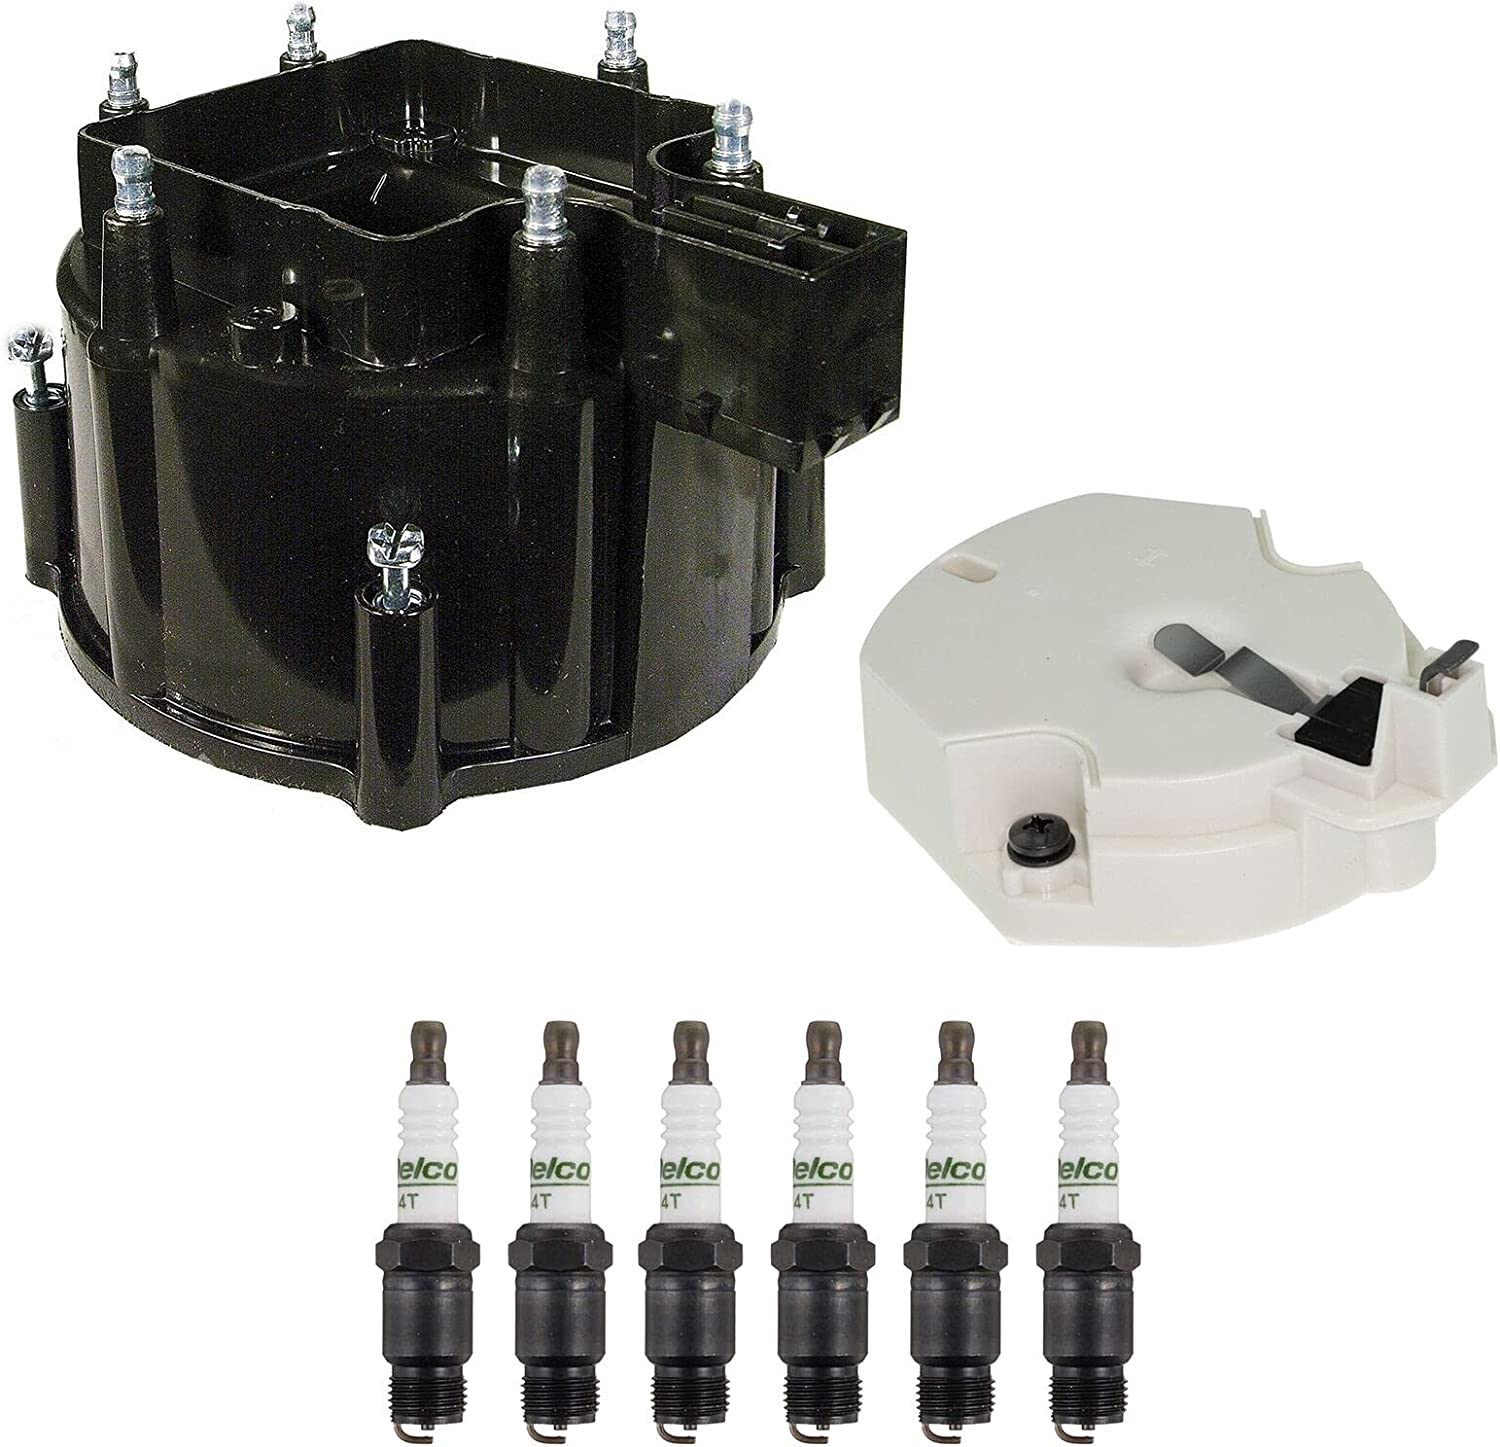 Replacement Max 59% OFF Distributor Cap and Kit Ranking TOP11 Rotor